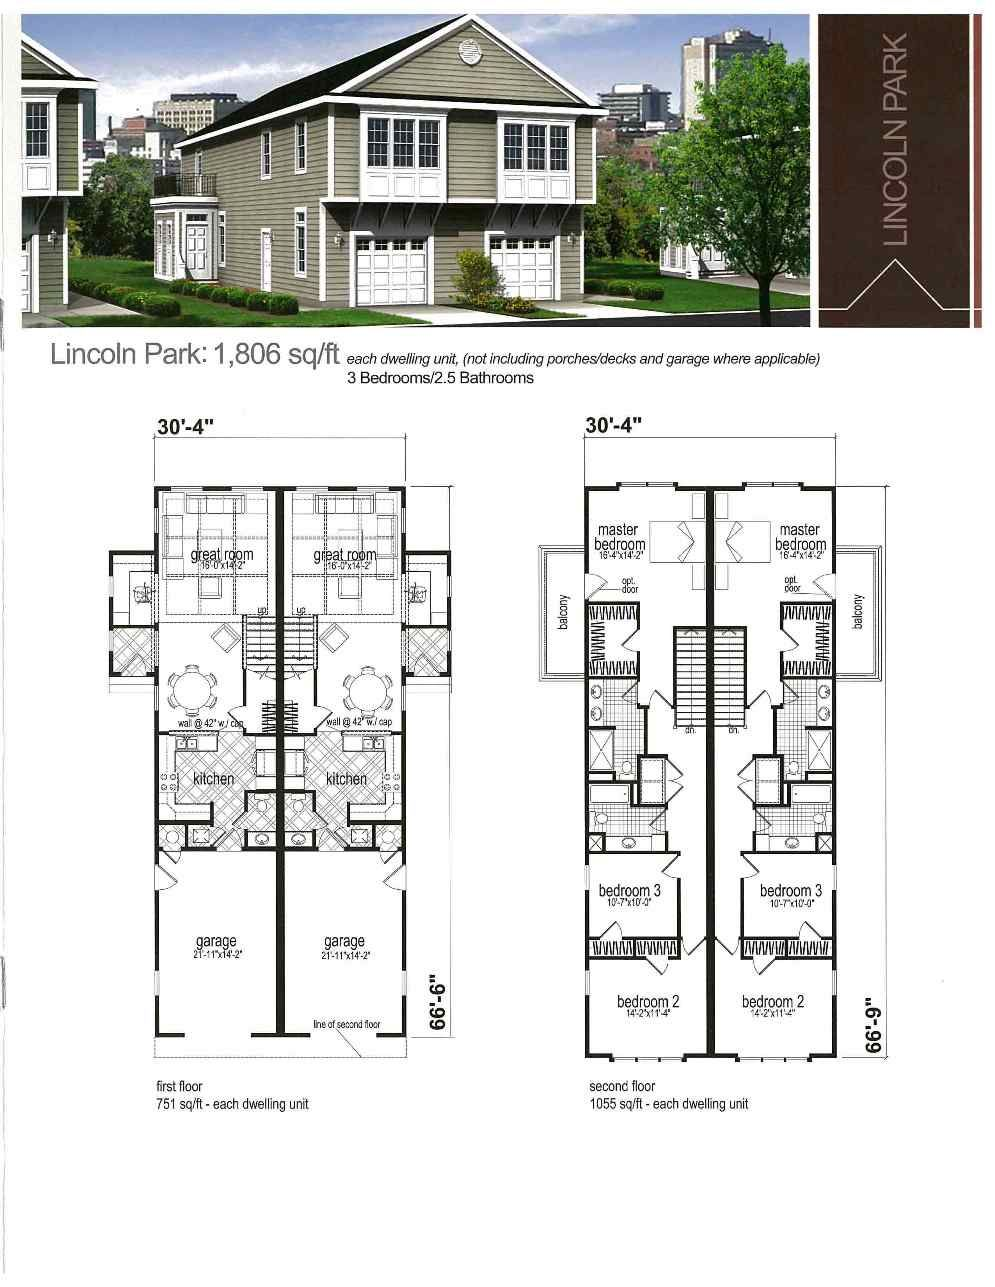 Duplex Plan Apartment Garage Apartments Plans Townhouse Design